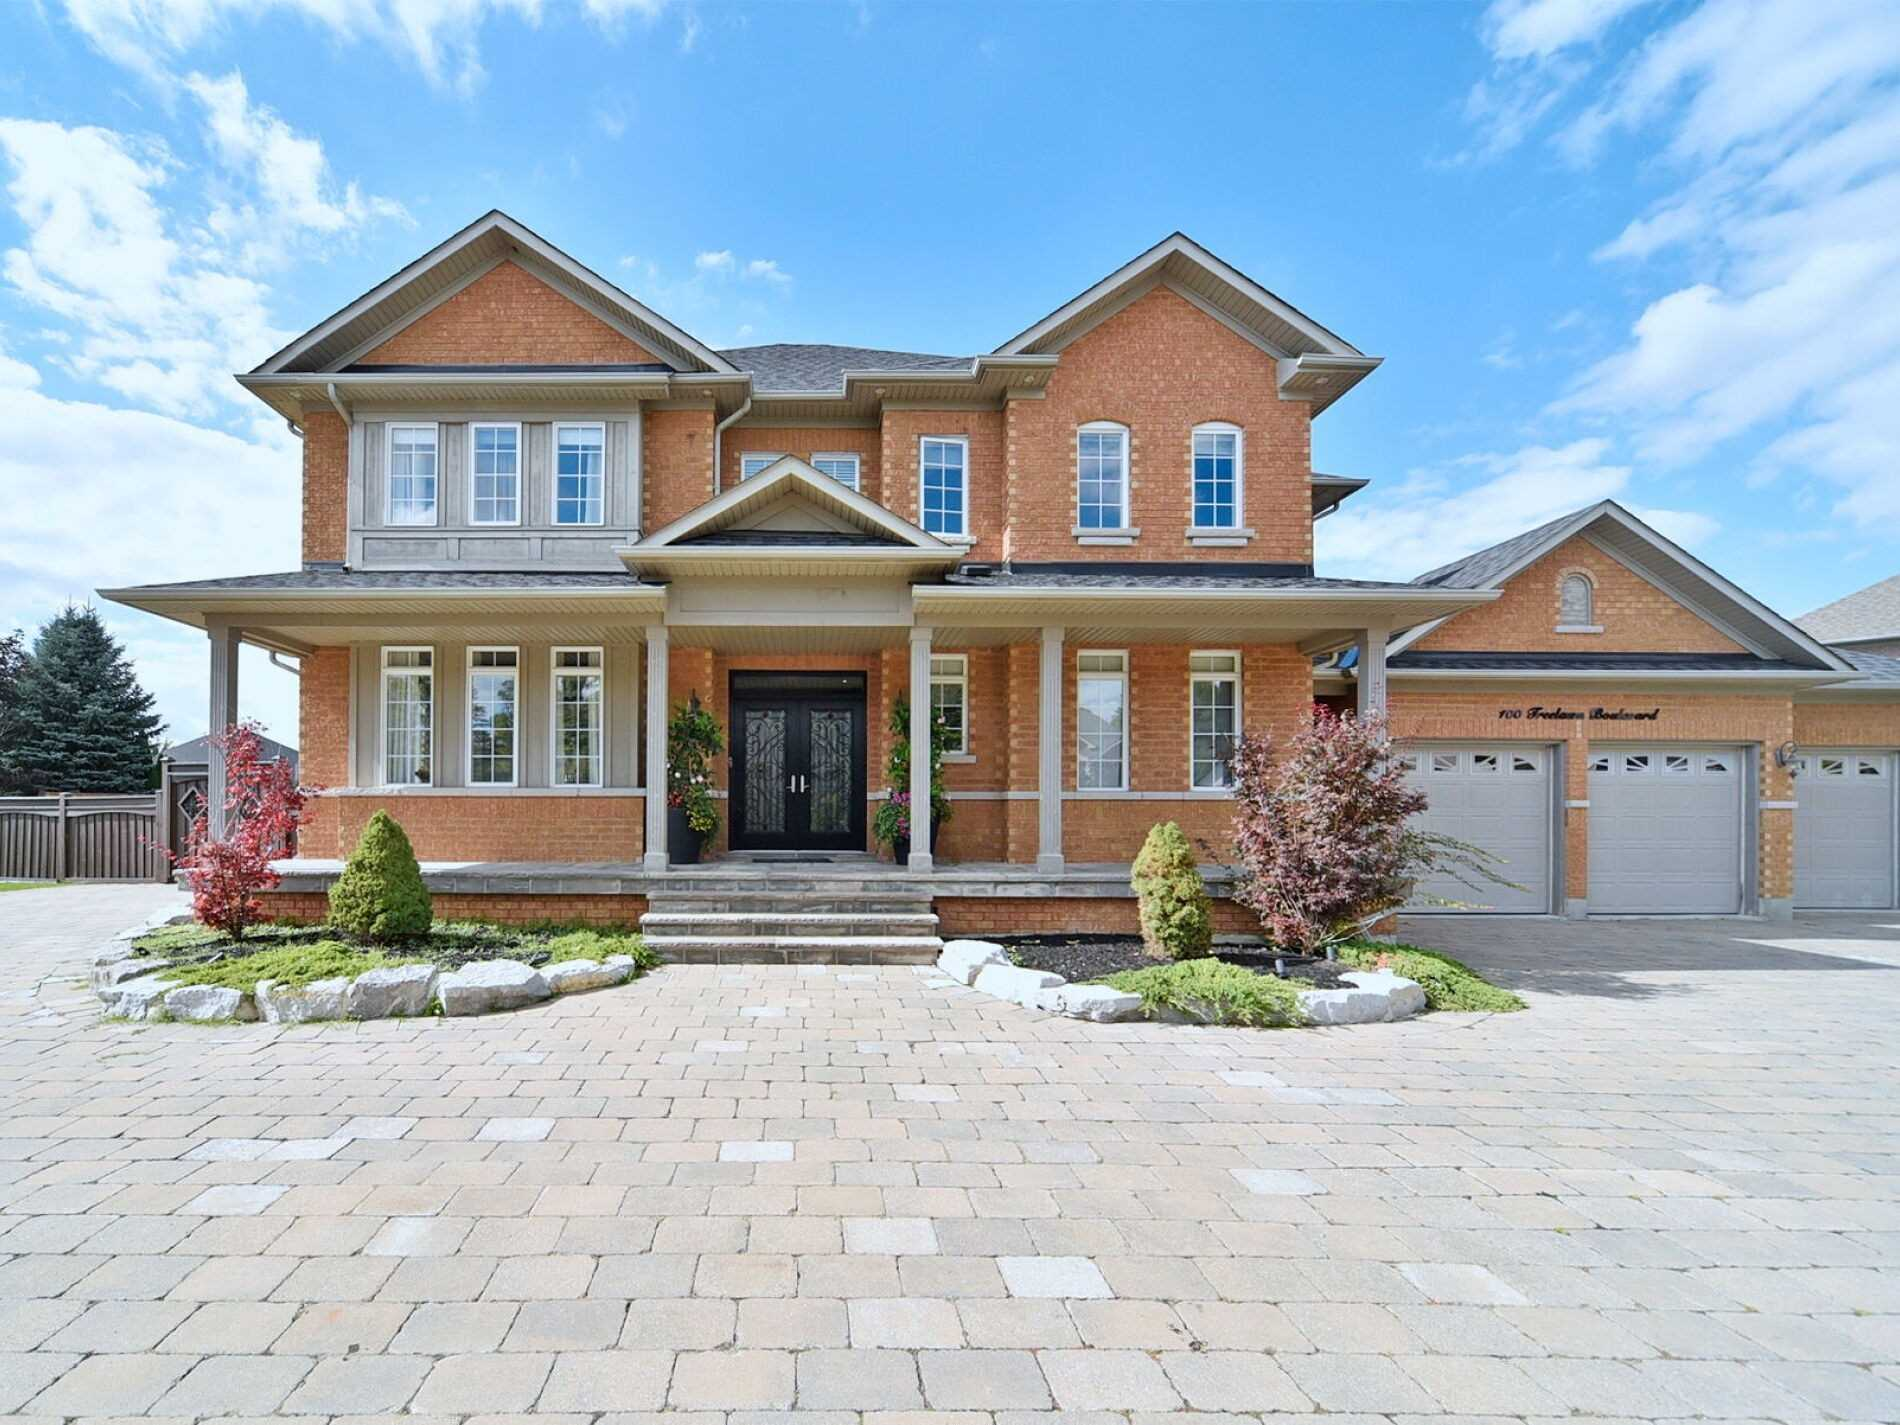 Detached house For Lease In Vaughan - 100 Treelawn Blvd, Vaughan, Ontario, Canada L0J1C0 , 4 Bedrooms Bedrooms, ,5 BathroomsBathrooms,Detached,For Lease,Treelawn